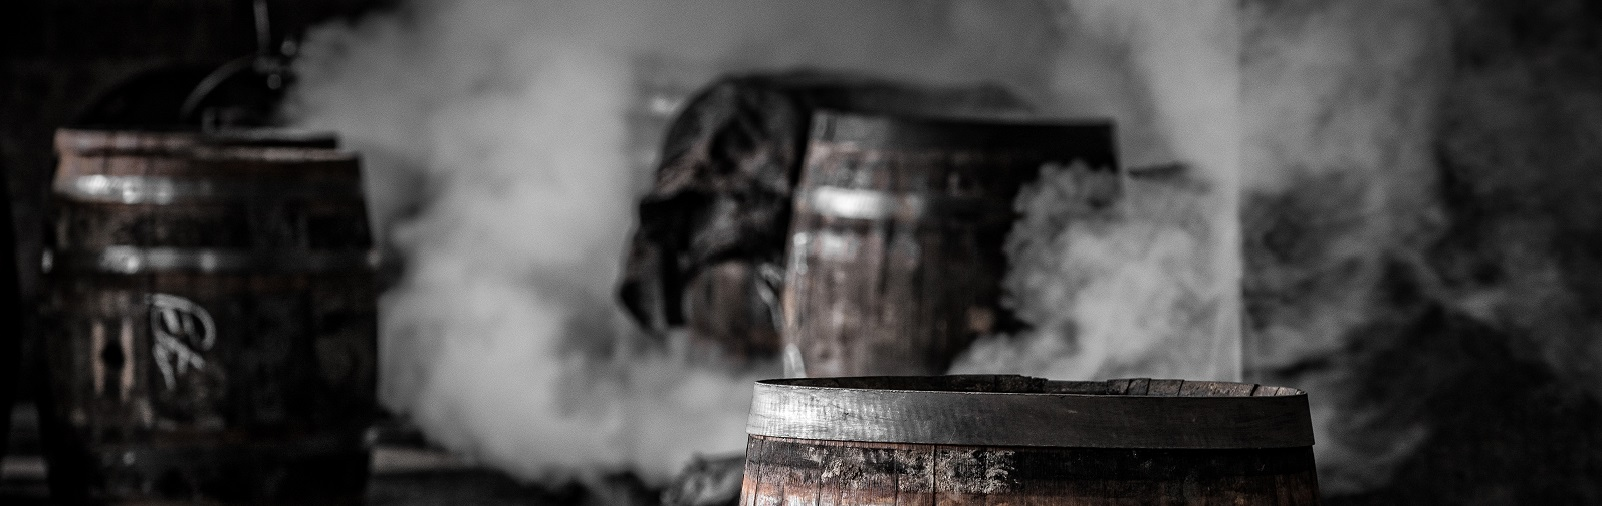 Speyside Cooperage Visitor Attraction In Moray